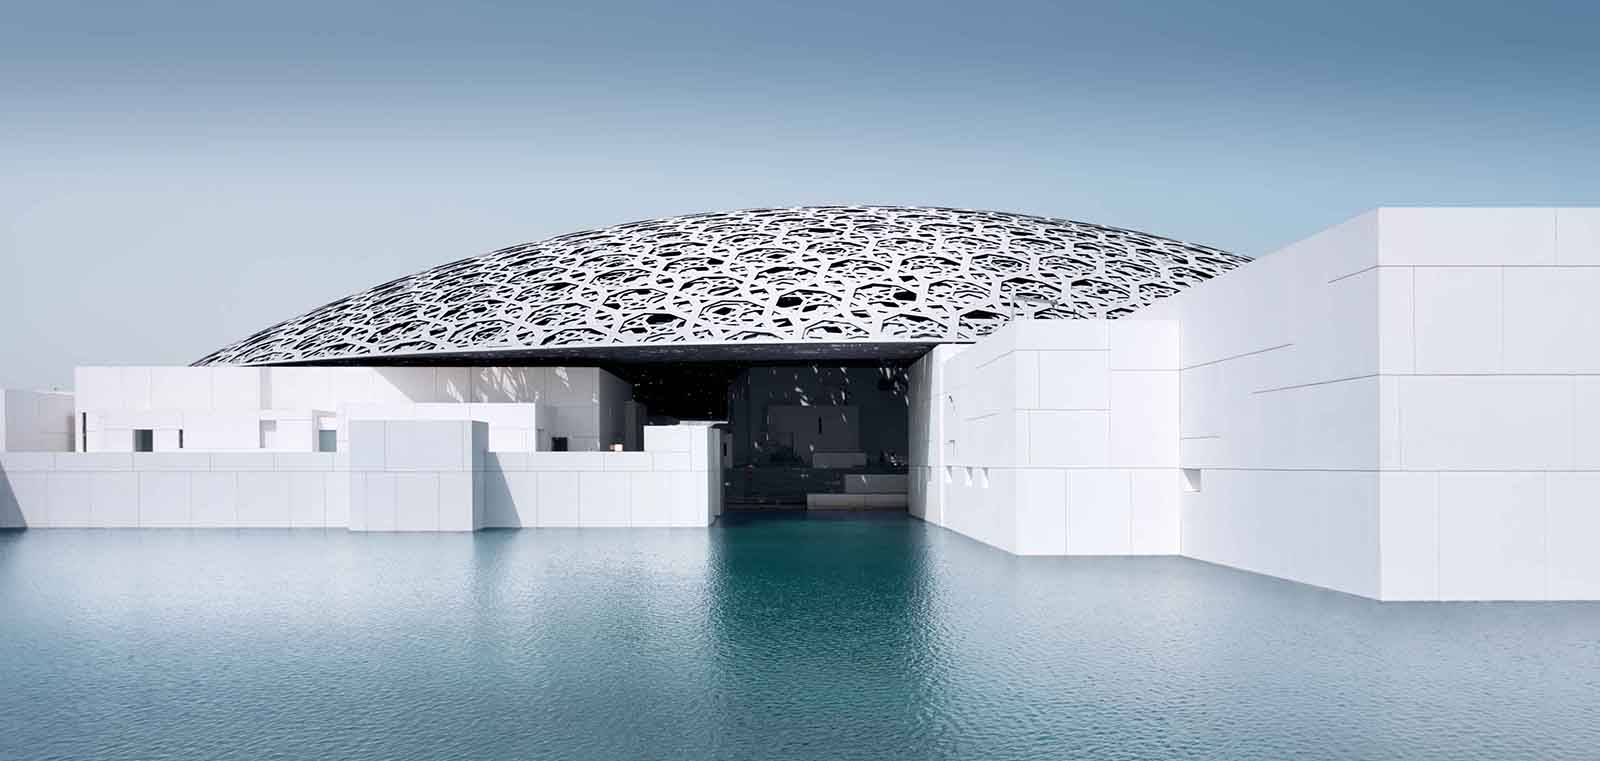 c_louvre_abu_dhabi_photography_by_mohamed_somji_2